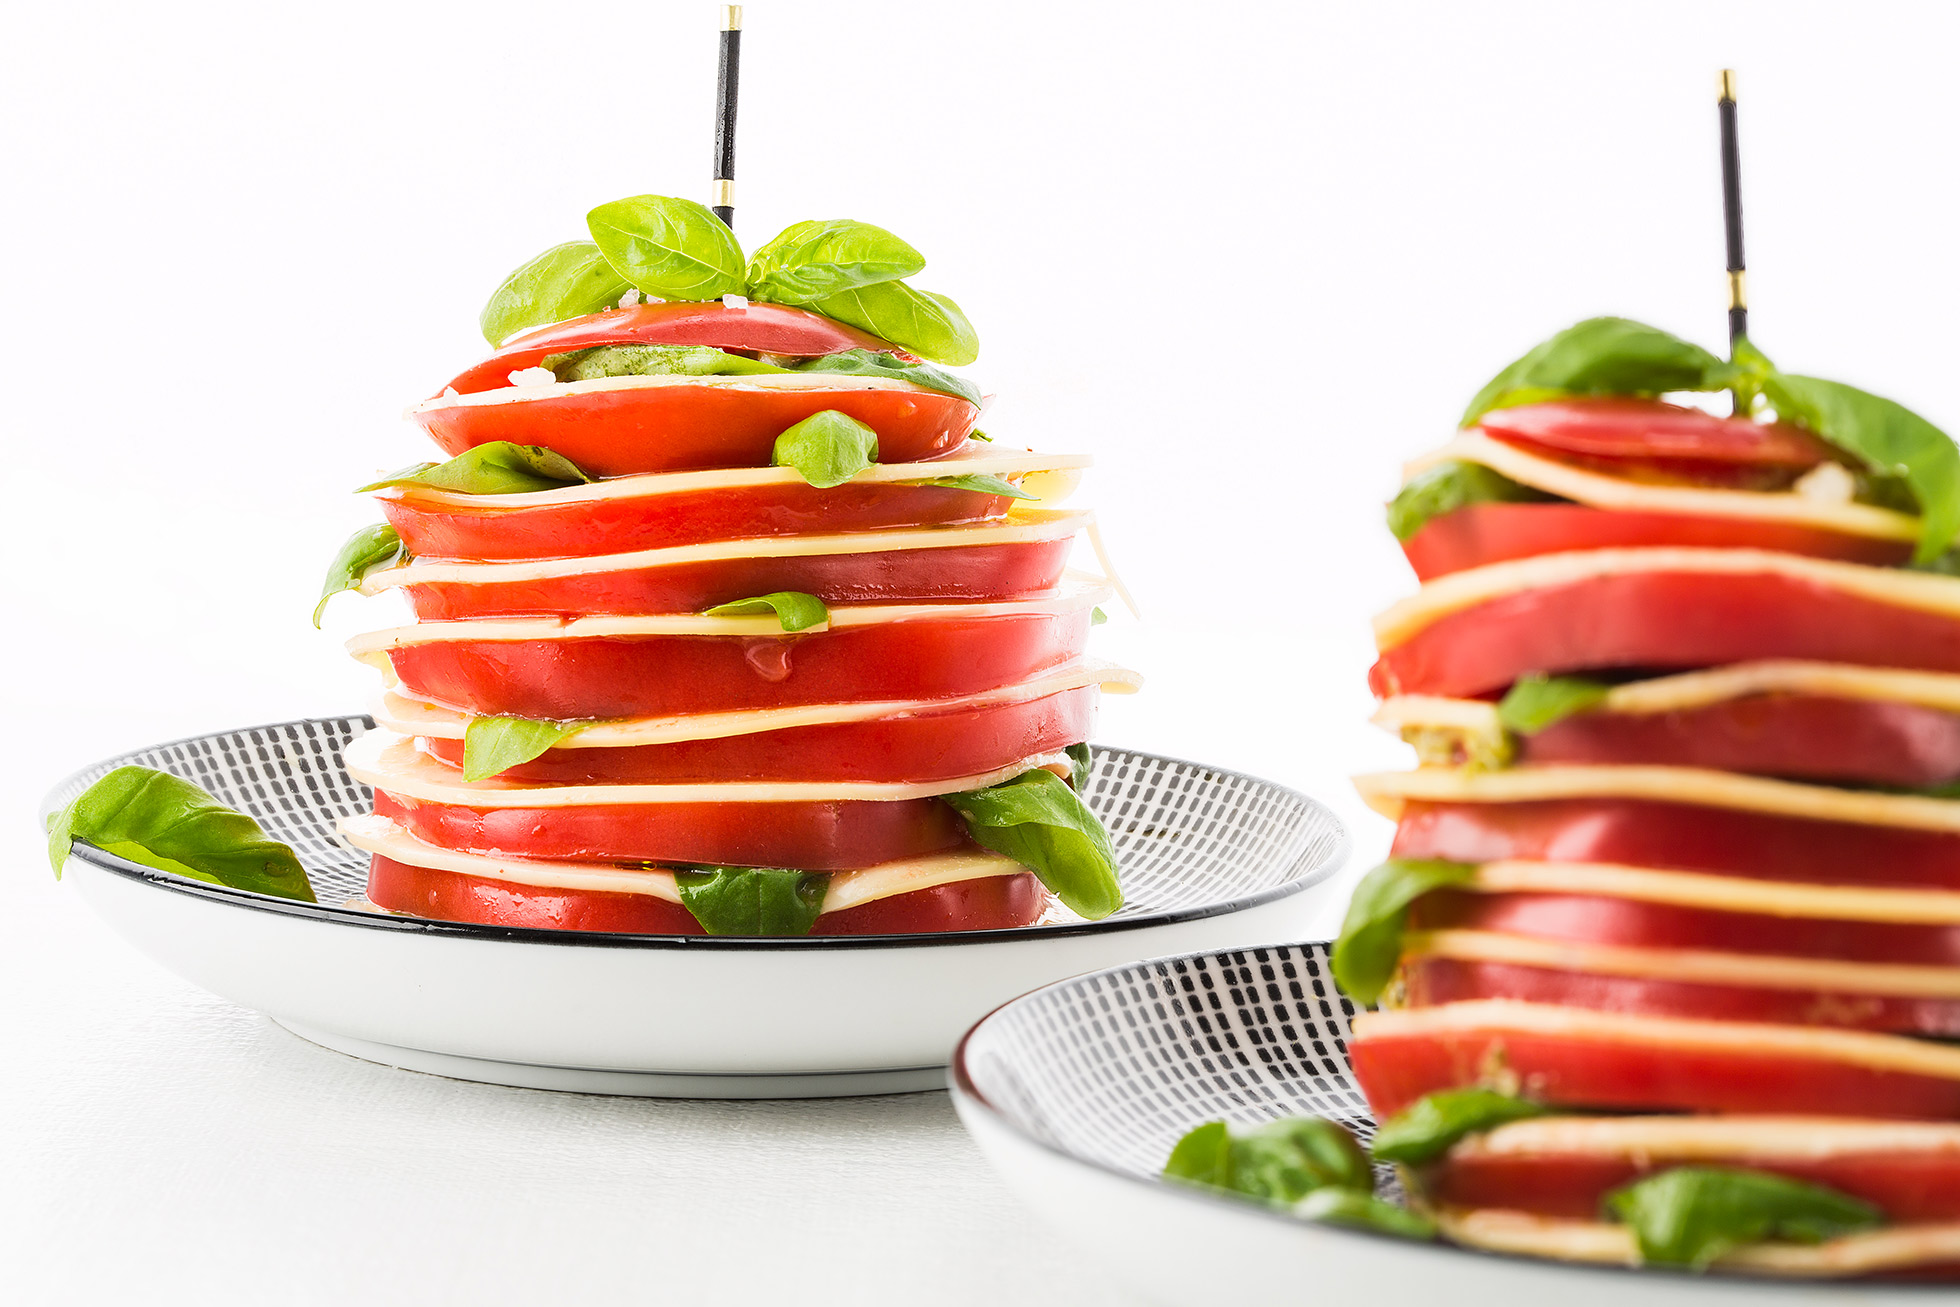 Tomato millefeuilles with baldaran